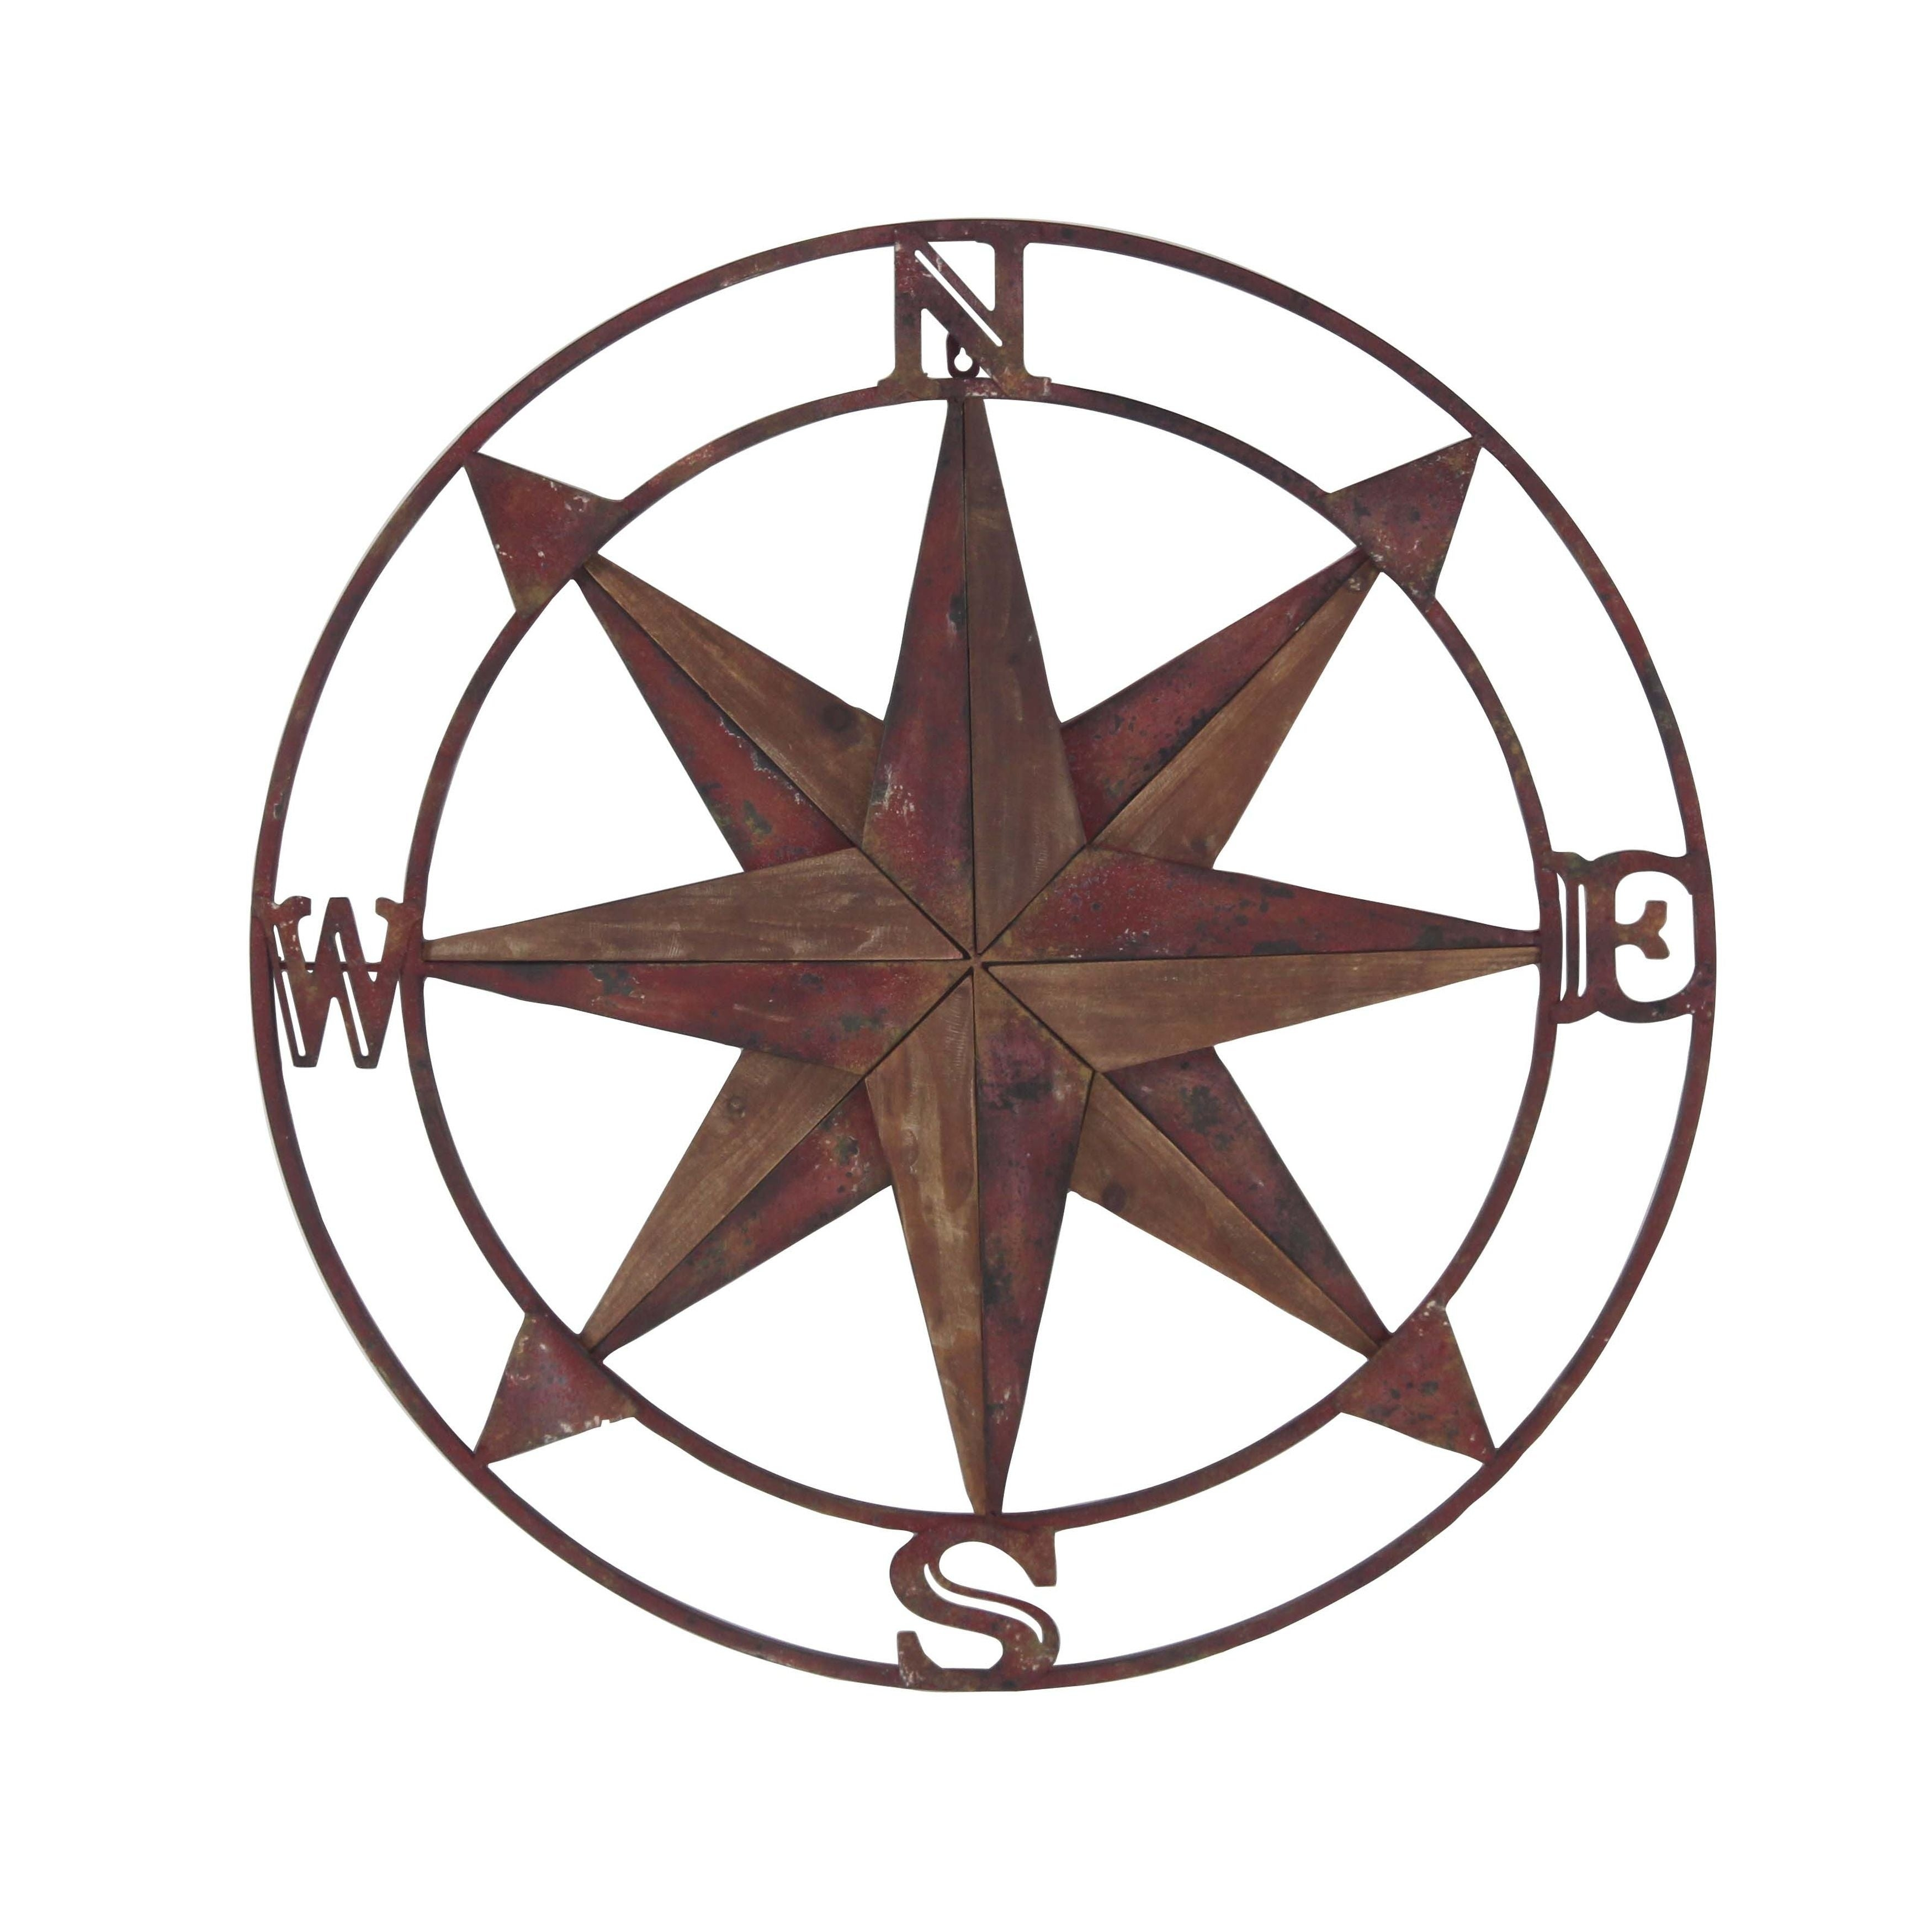 Ebay Within Round Compass Wall Decor (View 6 of 20)